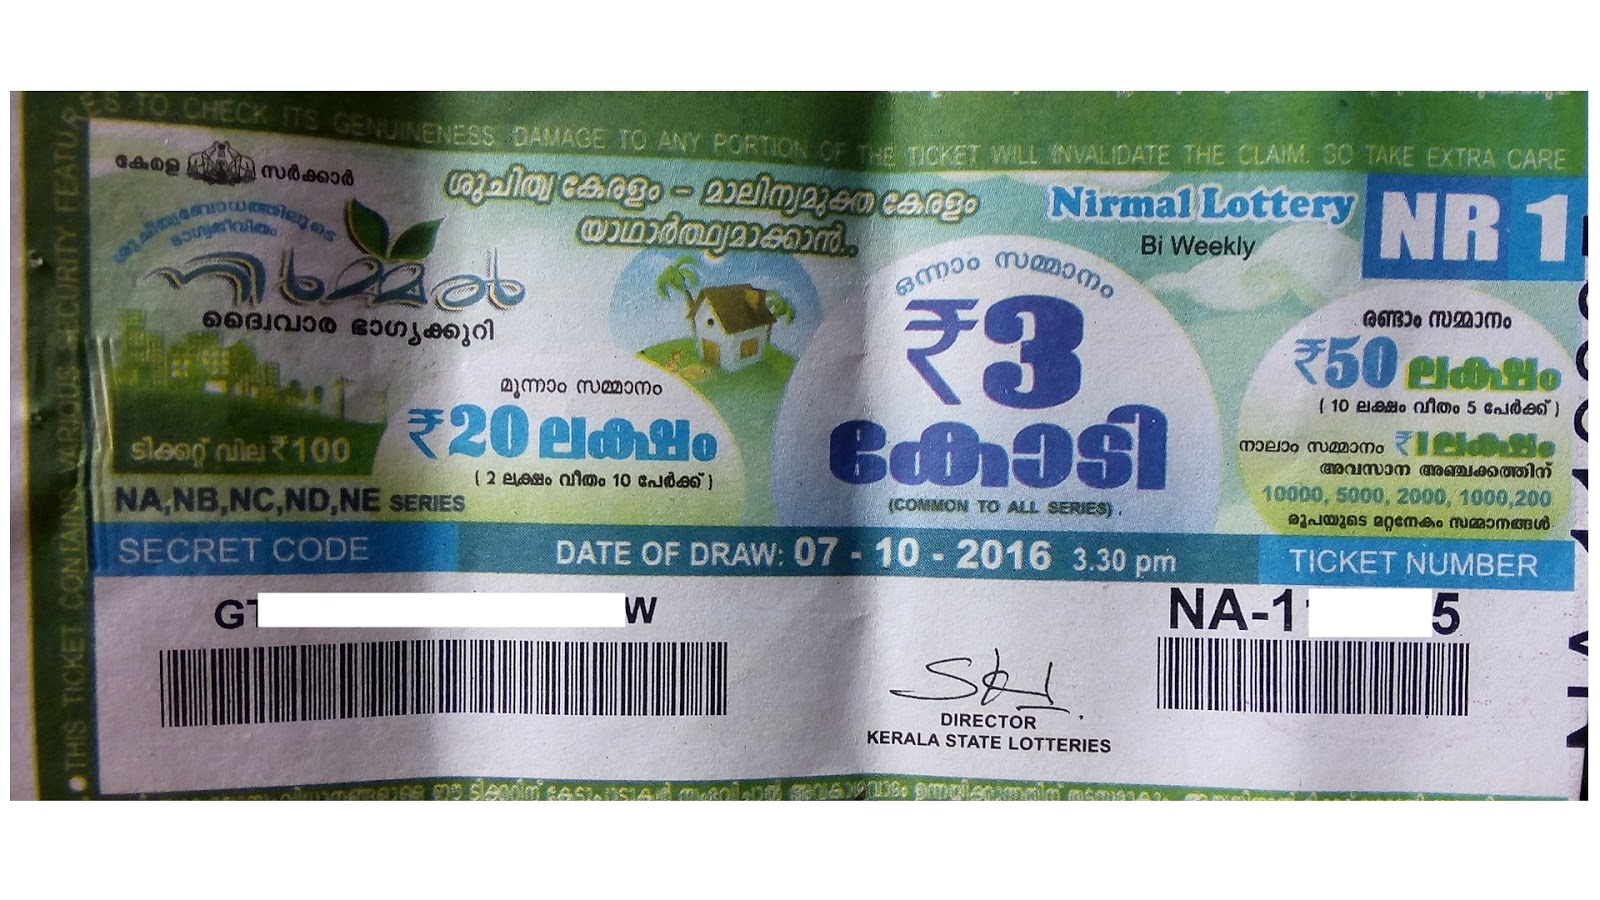 NEW 3 CRORE NIRMAL LOTTERY DETAILS